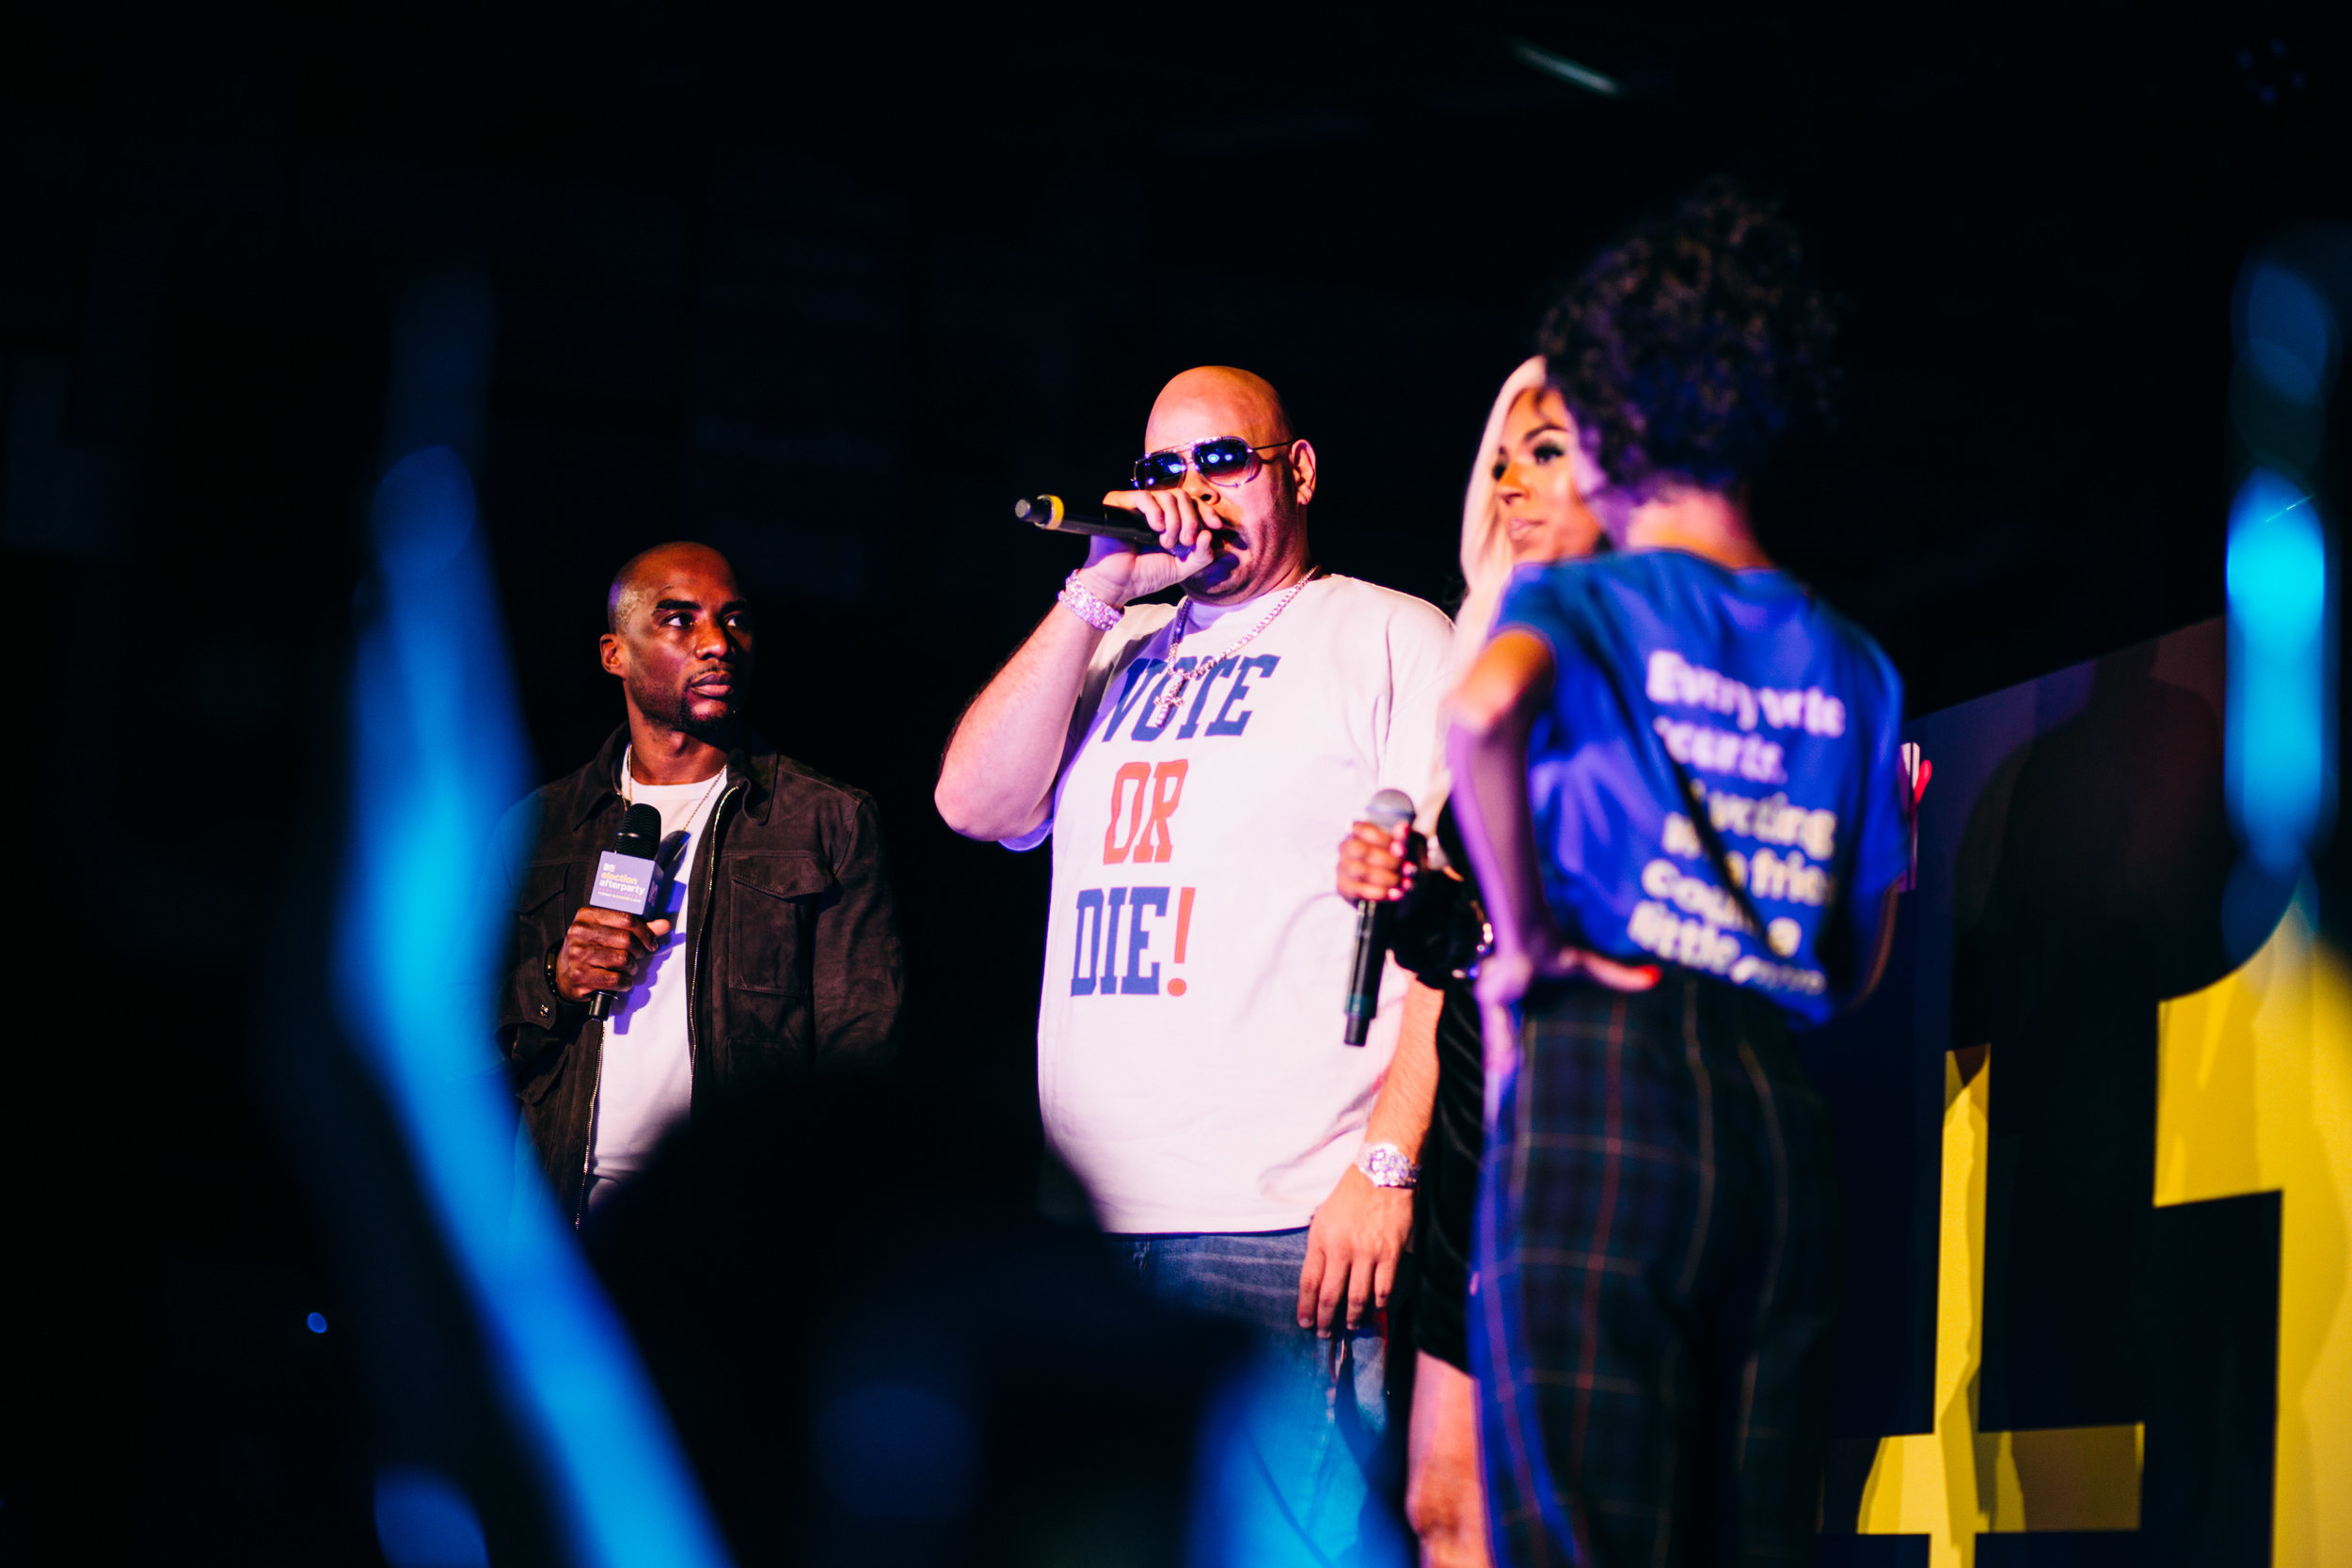 MTV Vote After Party FAT JOE ASHANTI by SWAY PHOTOS (57 of 81).jpg